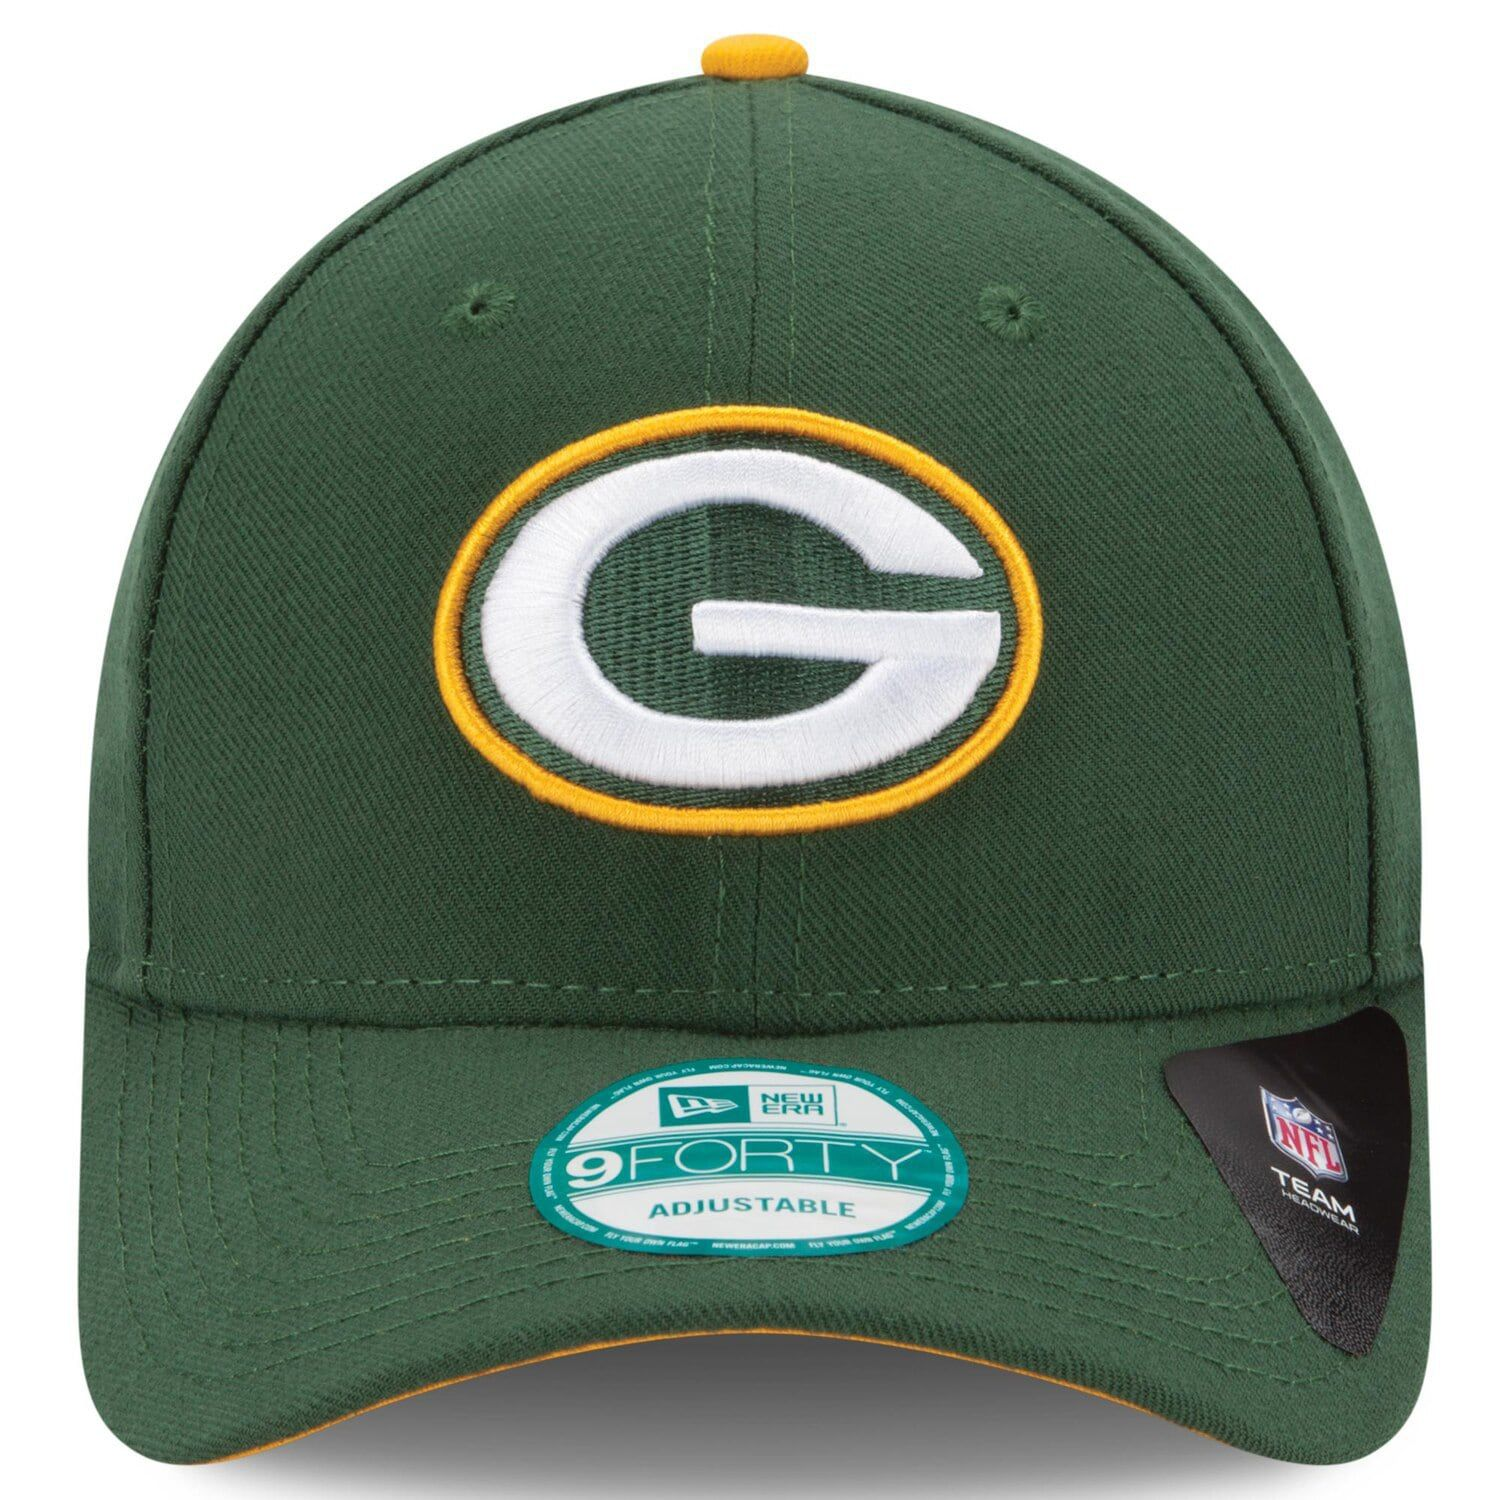 Youth New Era Green Green Bay Packers League 9forty Adjustable Hat Affiliate Green Affiliate Bay Youth Era Adjustable Hat Green Bay Packers New Era